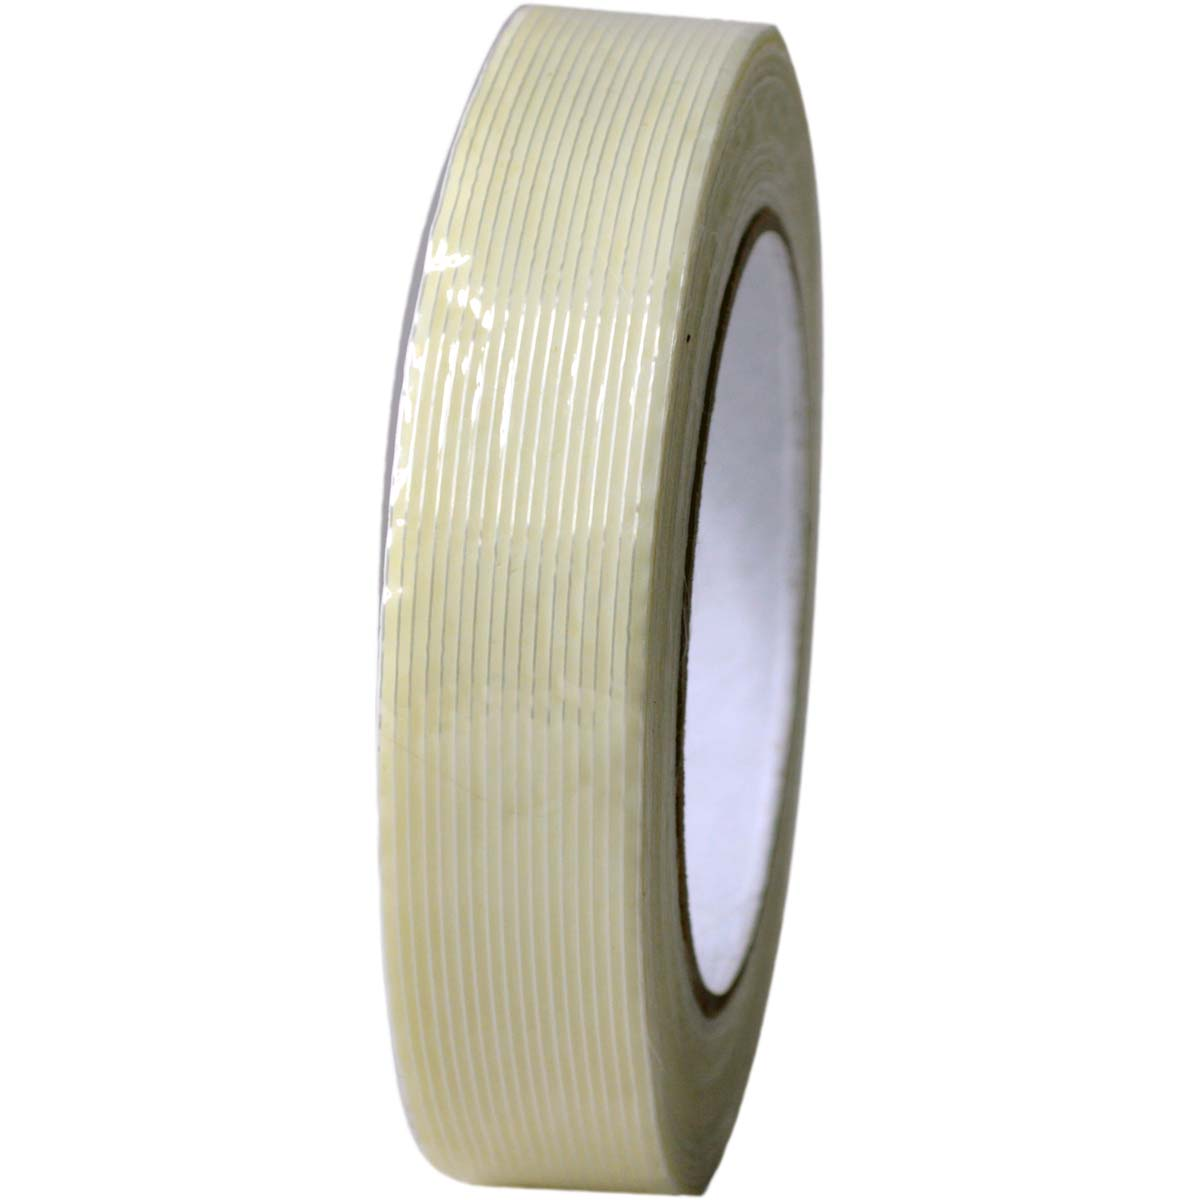 Berry 704 Utility Filament Tape 24mm x 55m